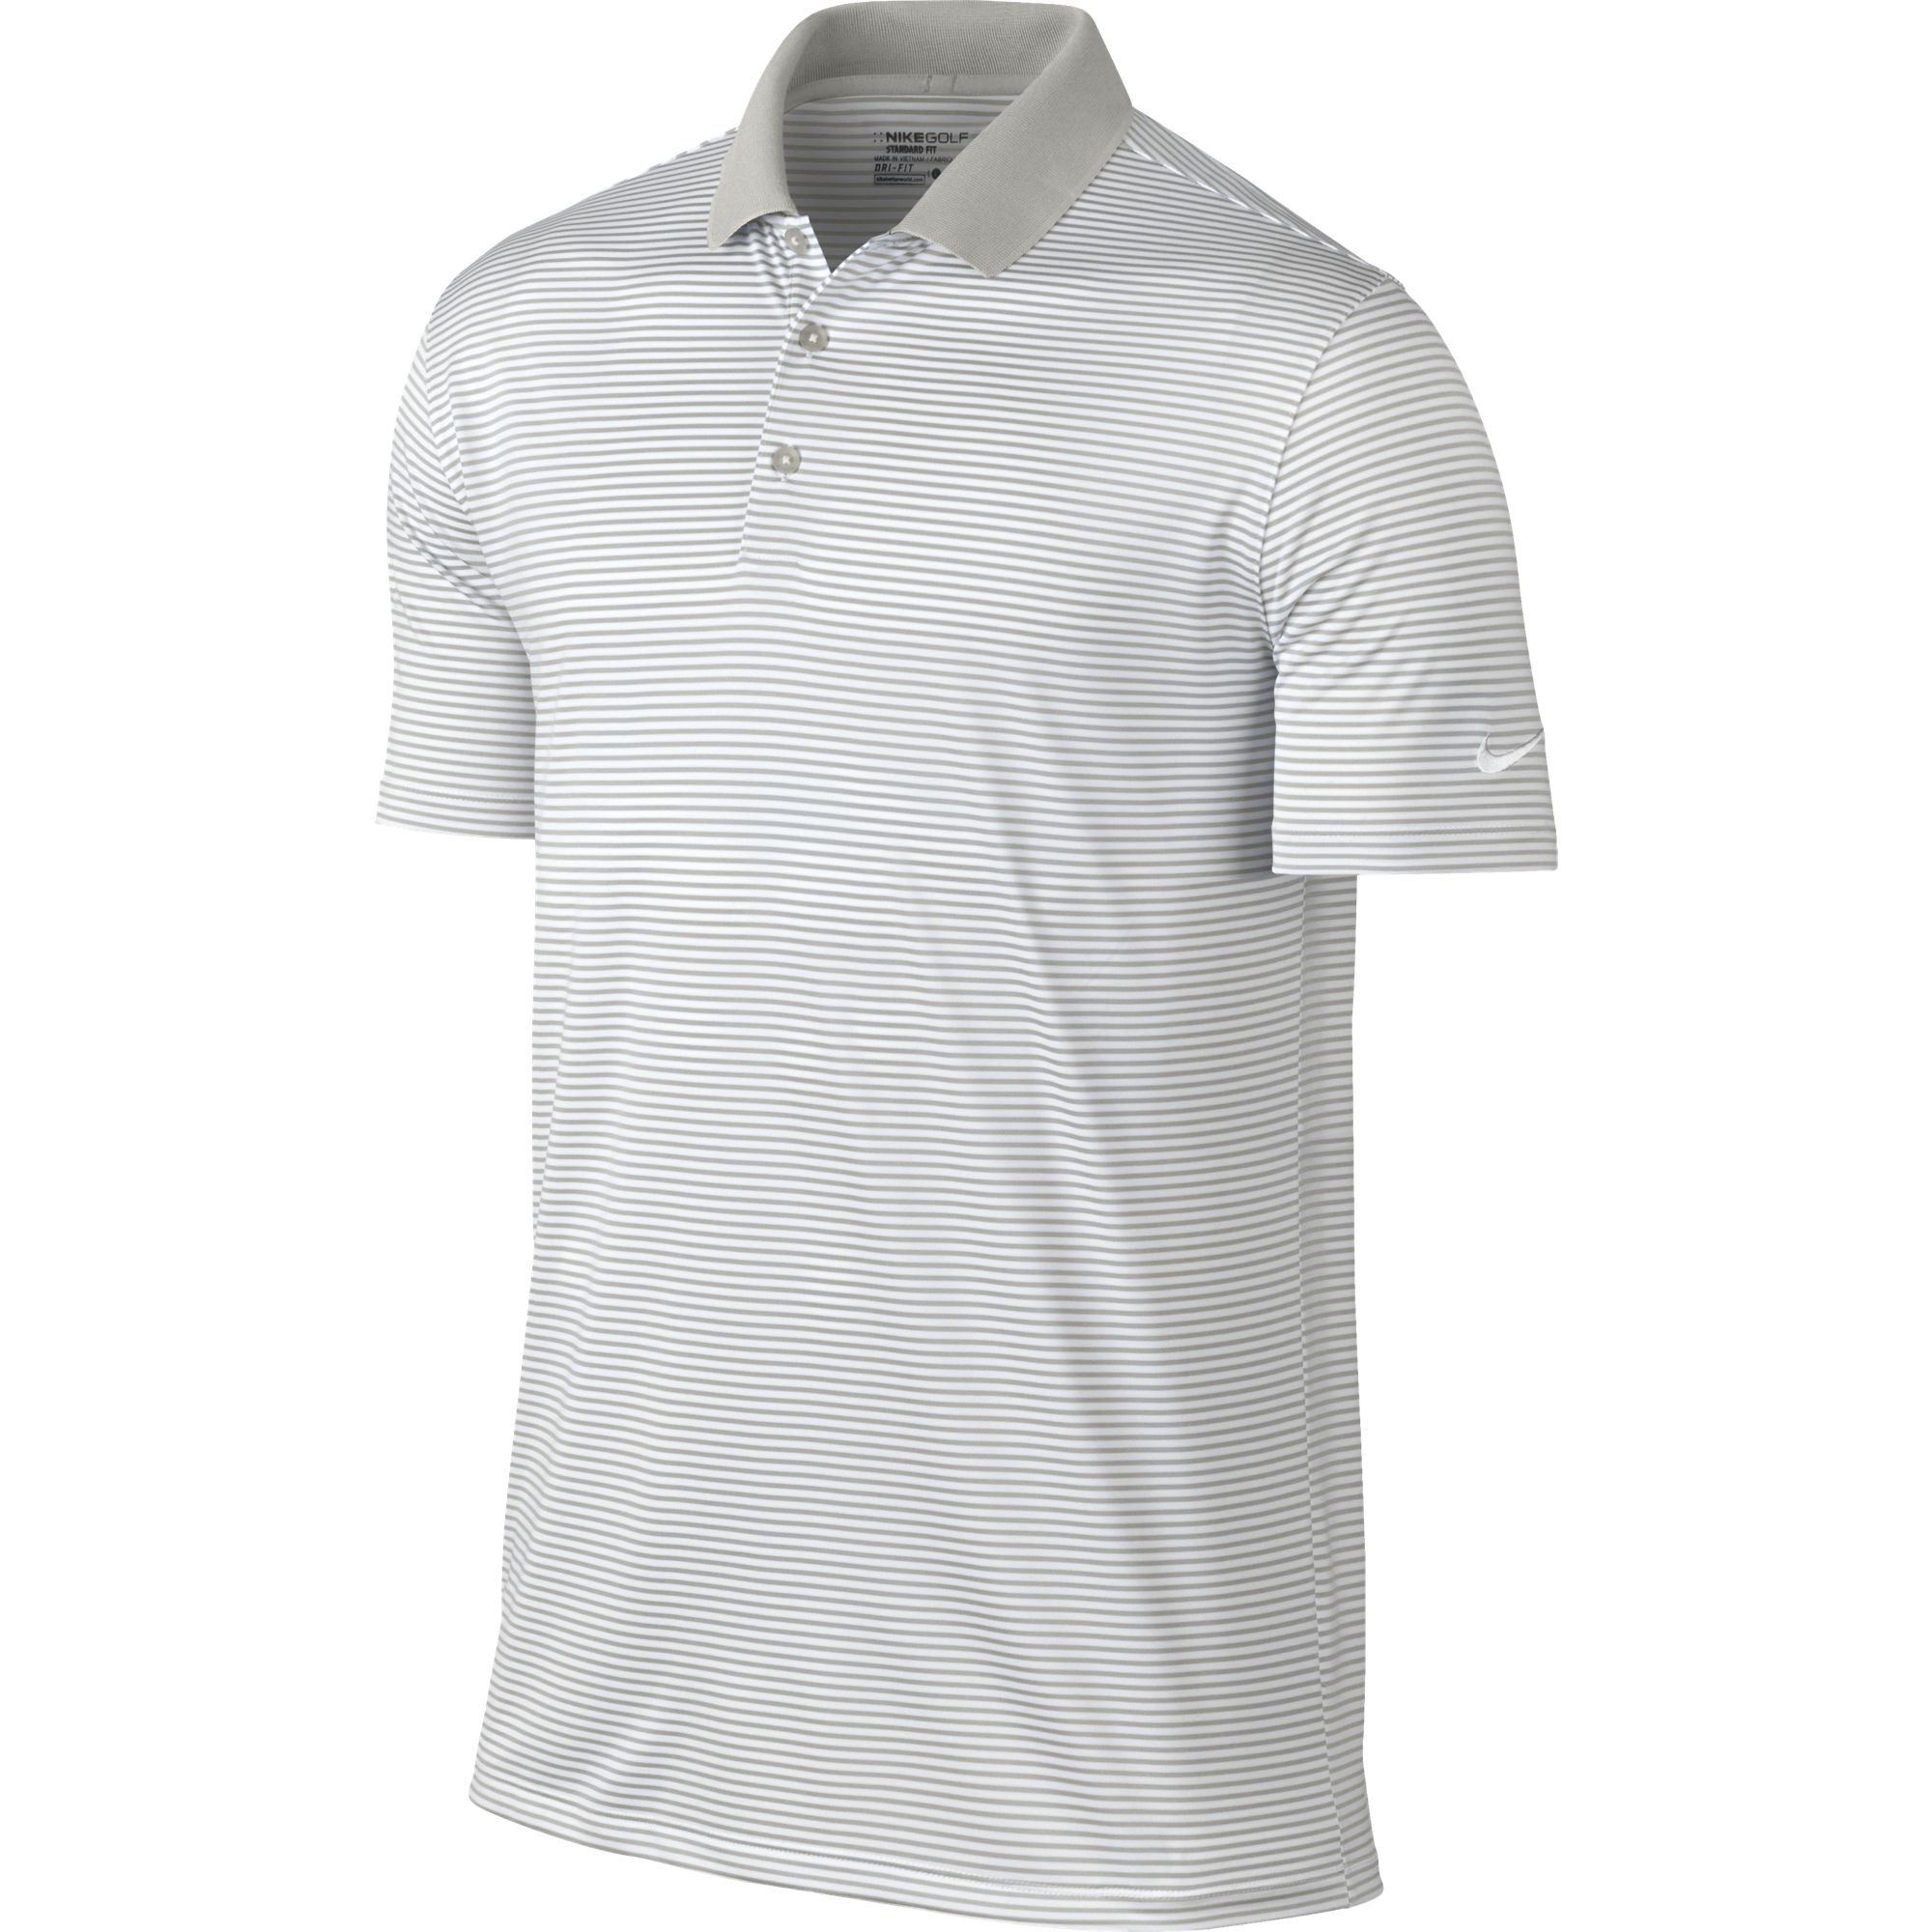 NIKE Men's Dry Victory Stripe Polo, Pewter Grey/White, Small